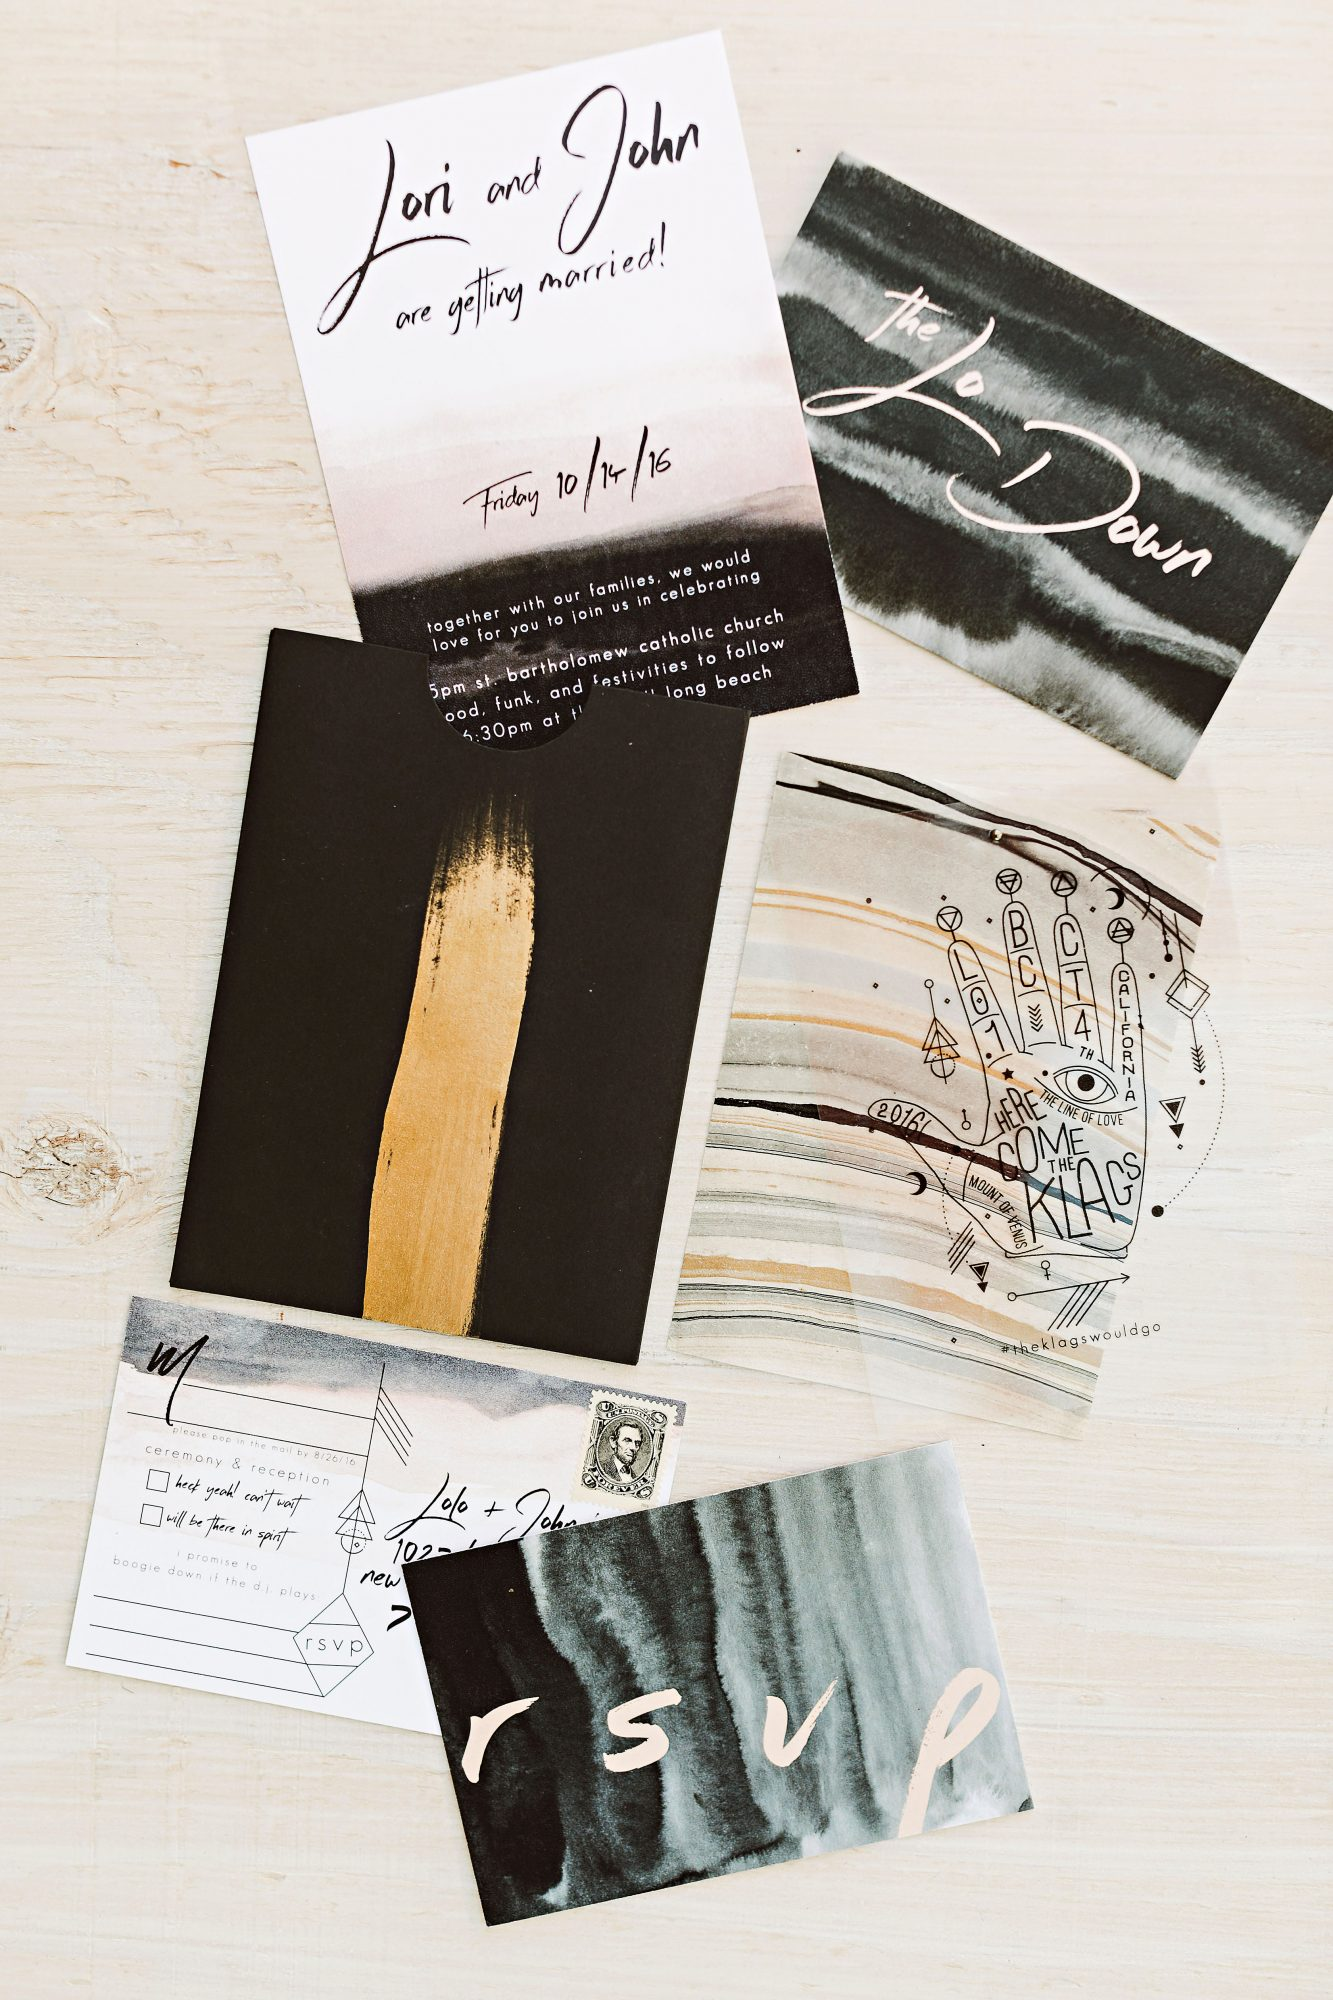 lori john wedding california stationery